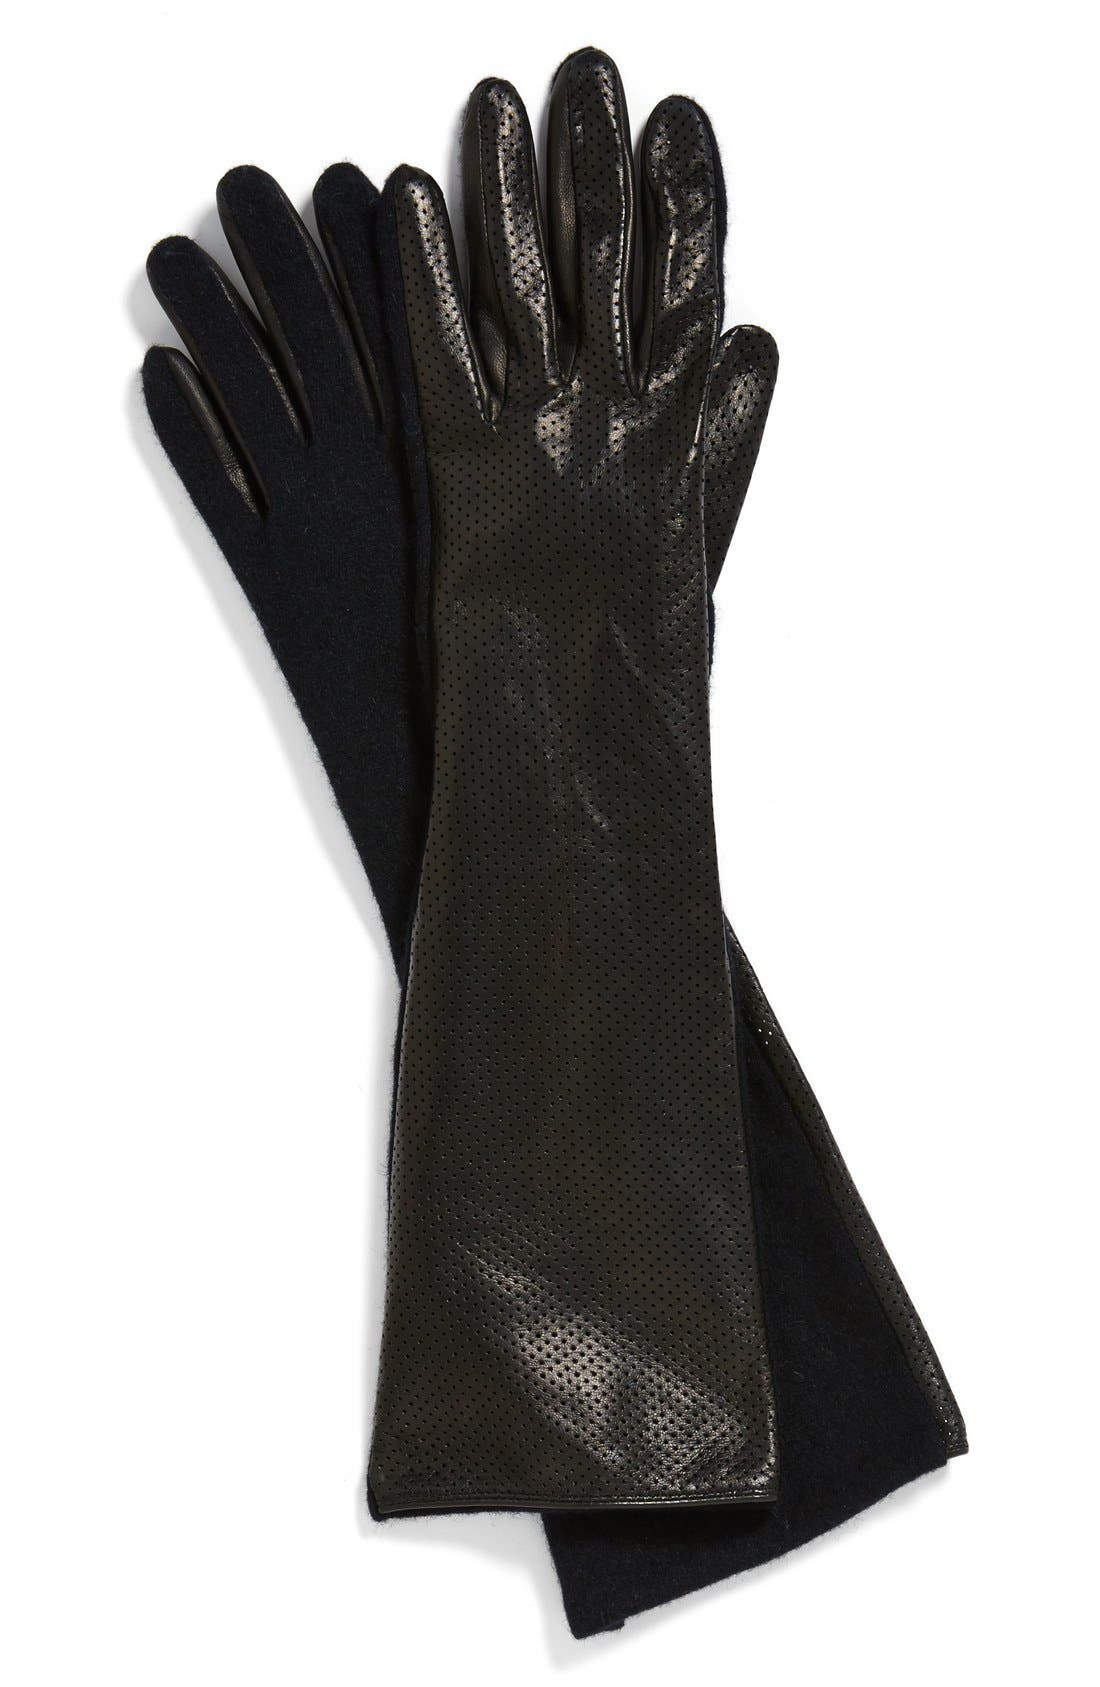 VINCE CAMUTO, Perforated Leather Gloves, Alternate thumbnail 2, color, 001